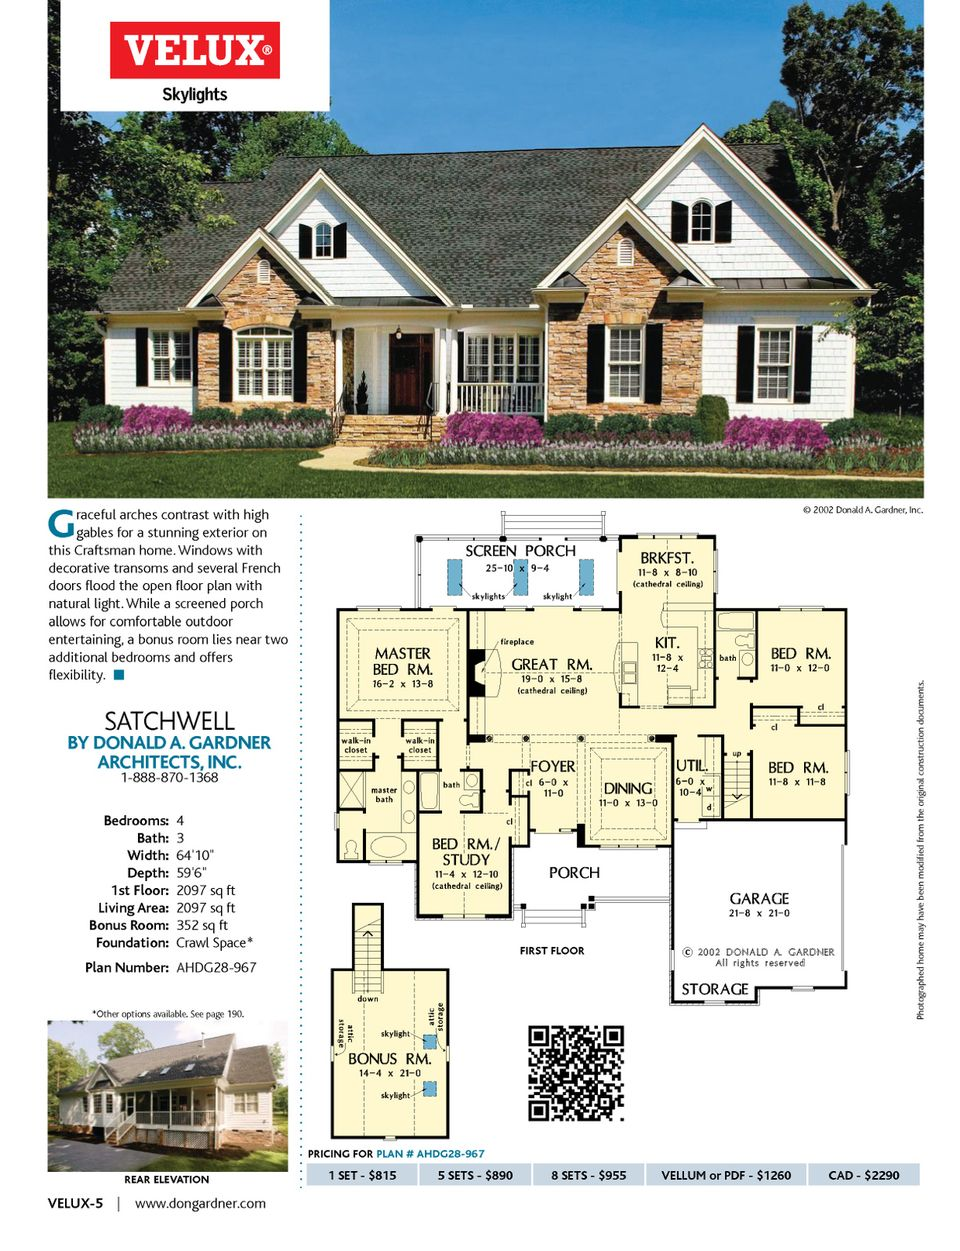 Designer Dream Homes Best Home Plans Of Donald A Gardner Page 68 House Plans Best Home Plans New House Plans